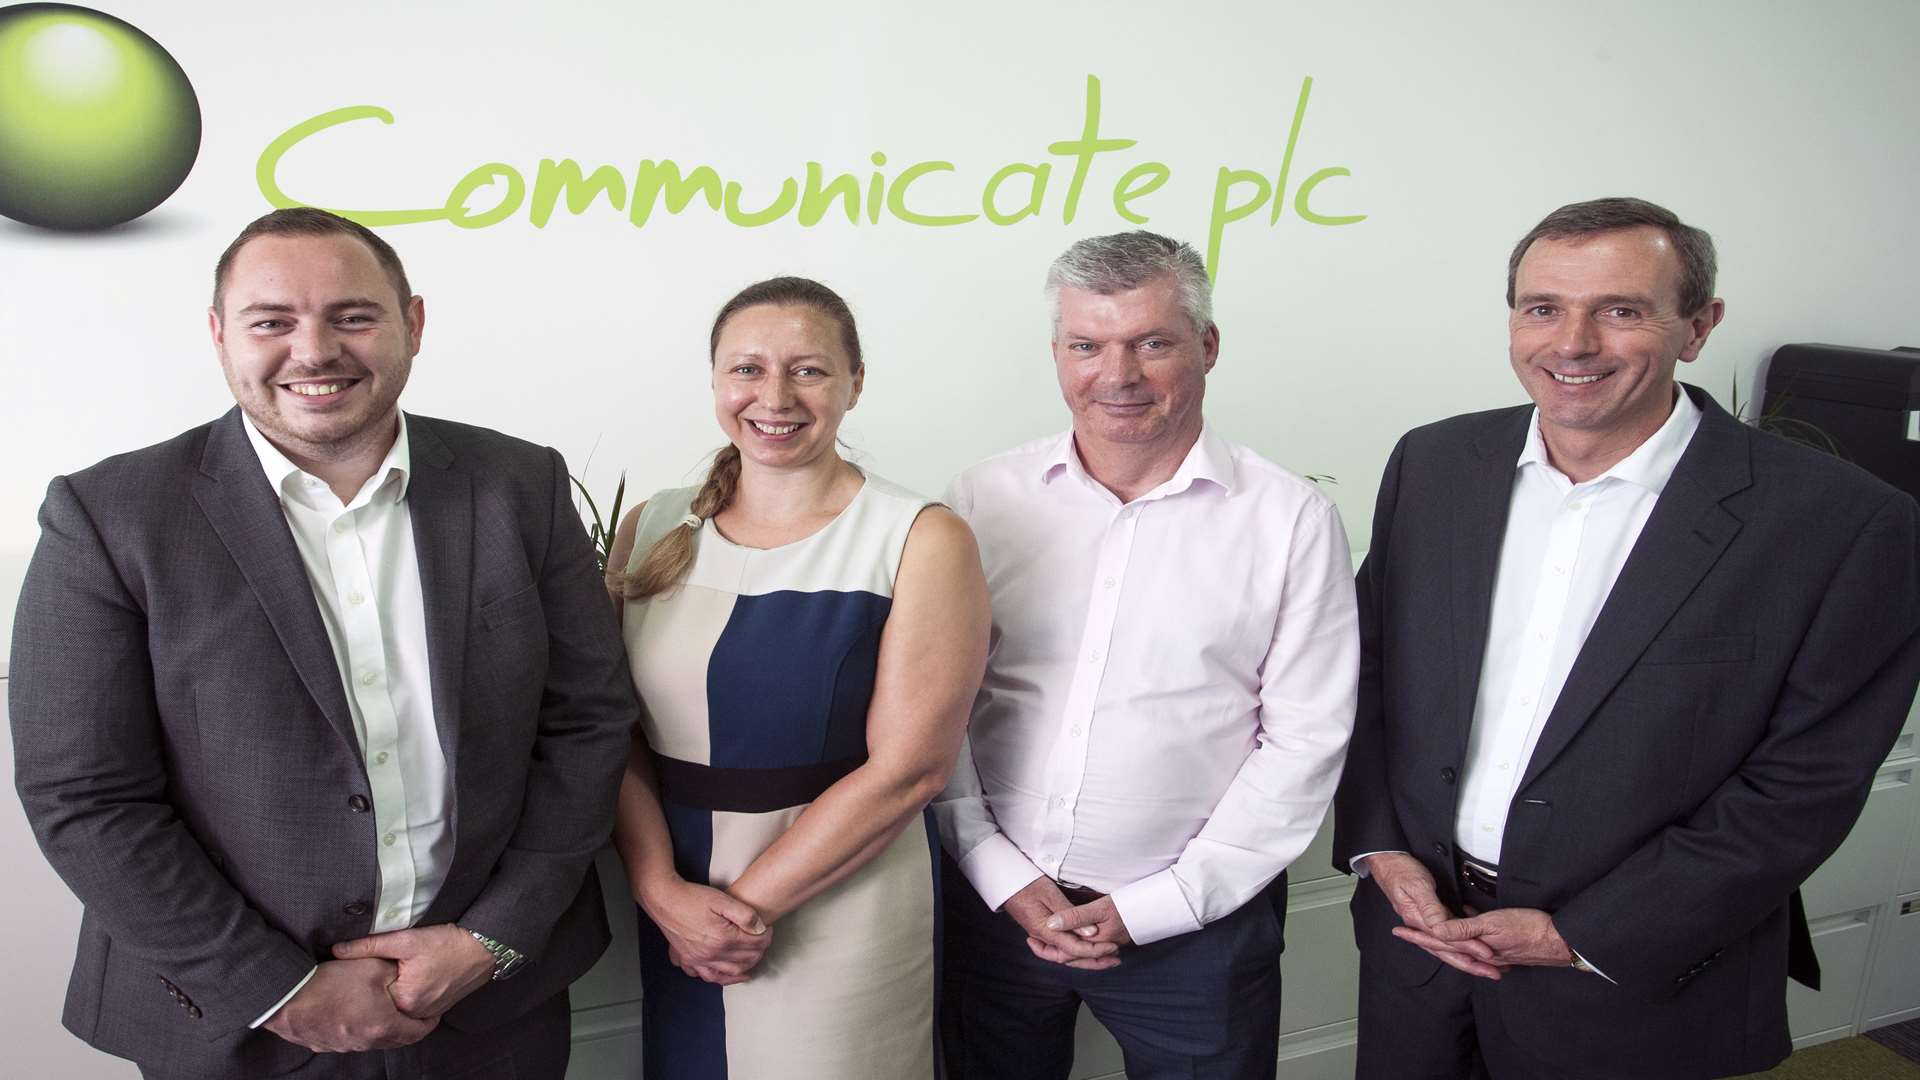 From left, Oliver Stell, Emily Bentley, Tony Snaith and John Toal of Communicate Technology